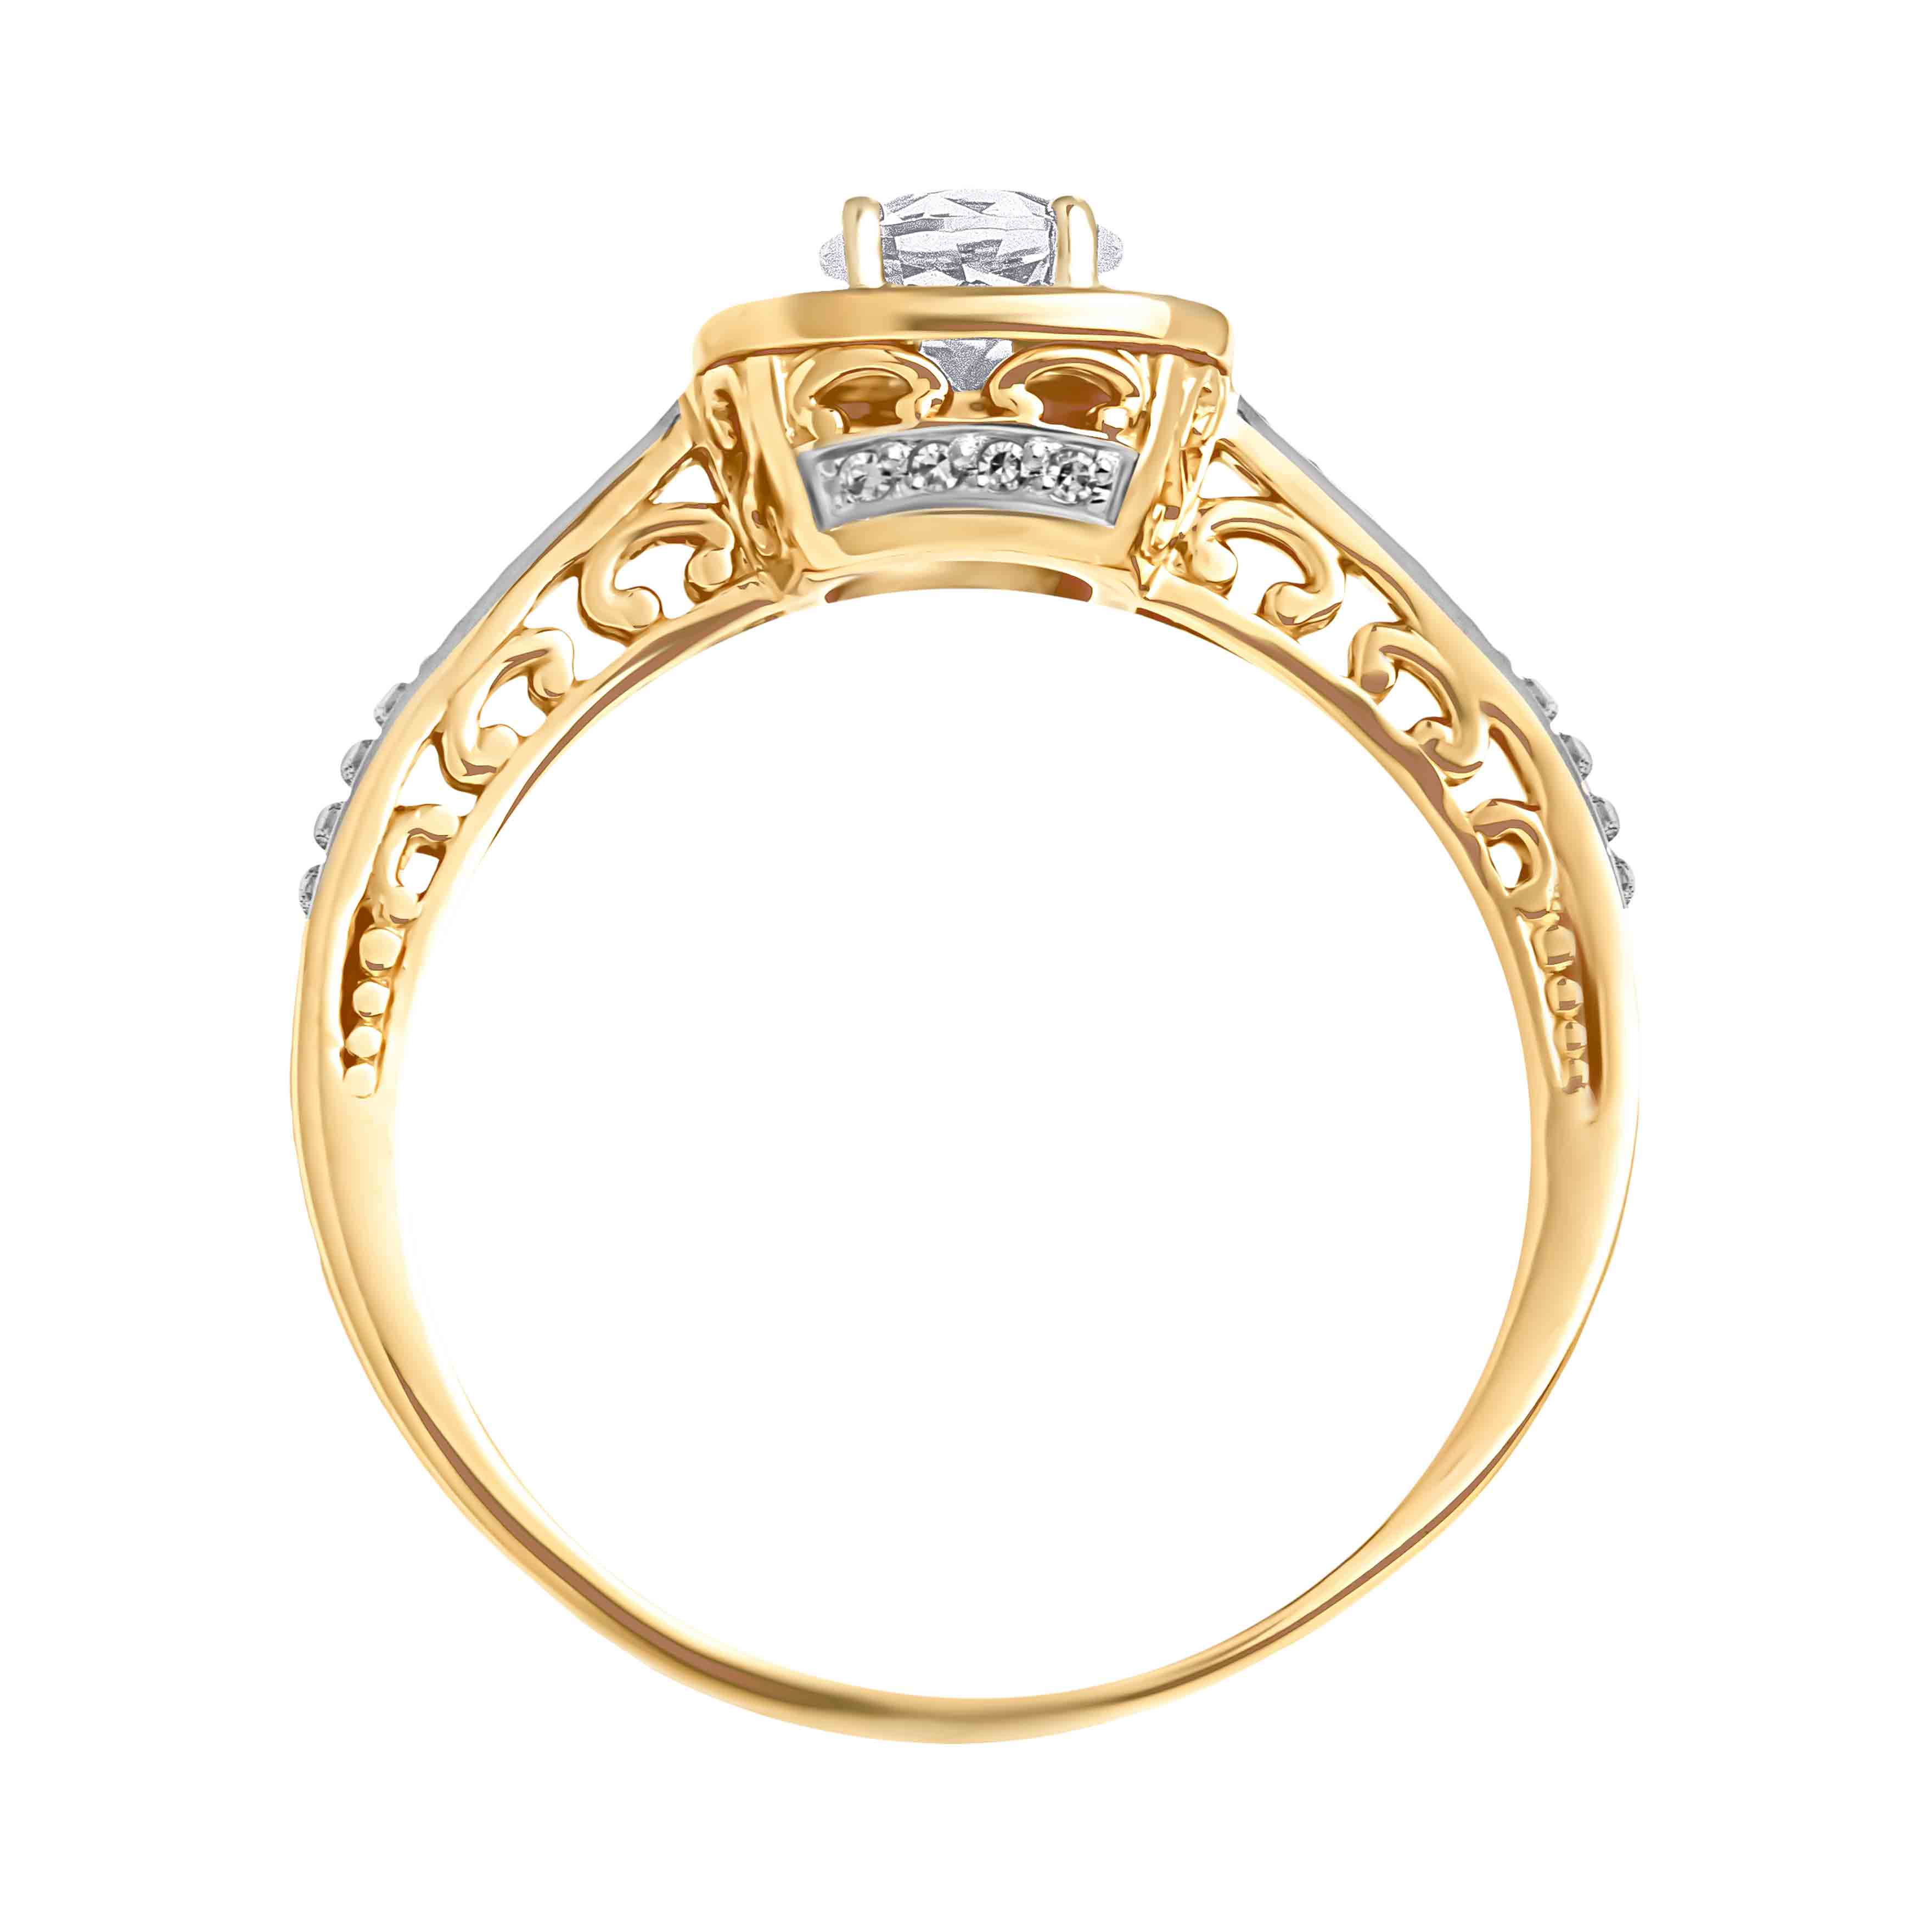 14kt yellow gold Swarovski topaz and diamond affordable engagement ring. View 3